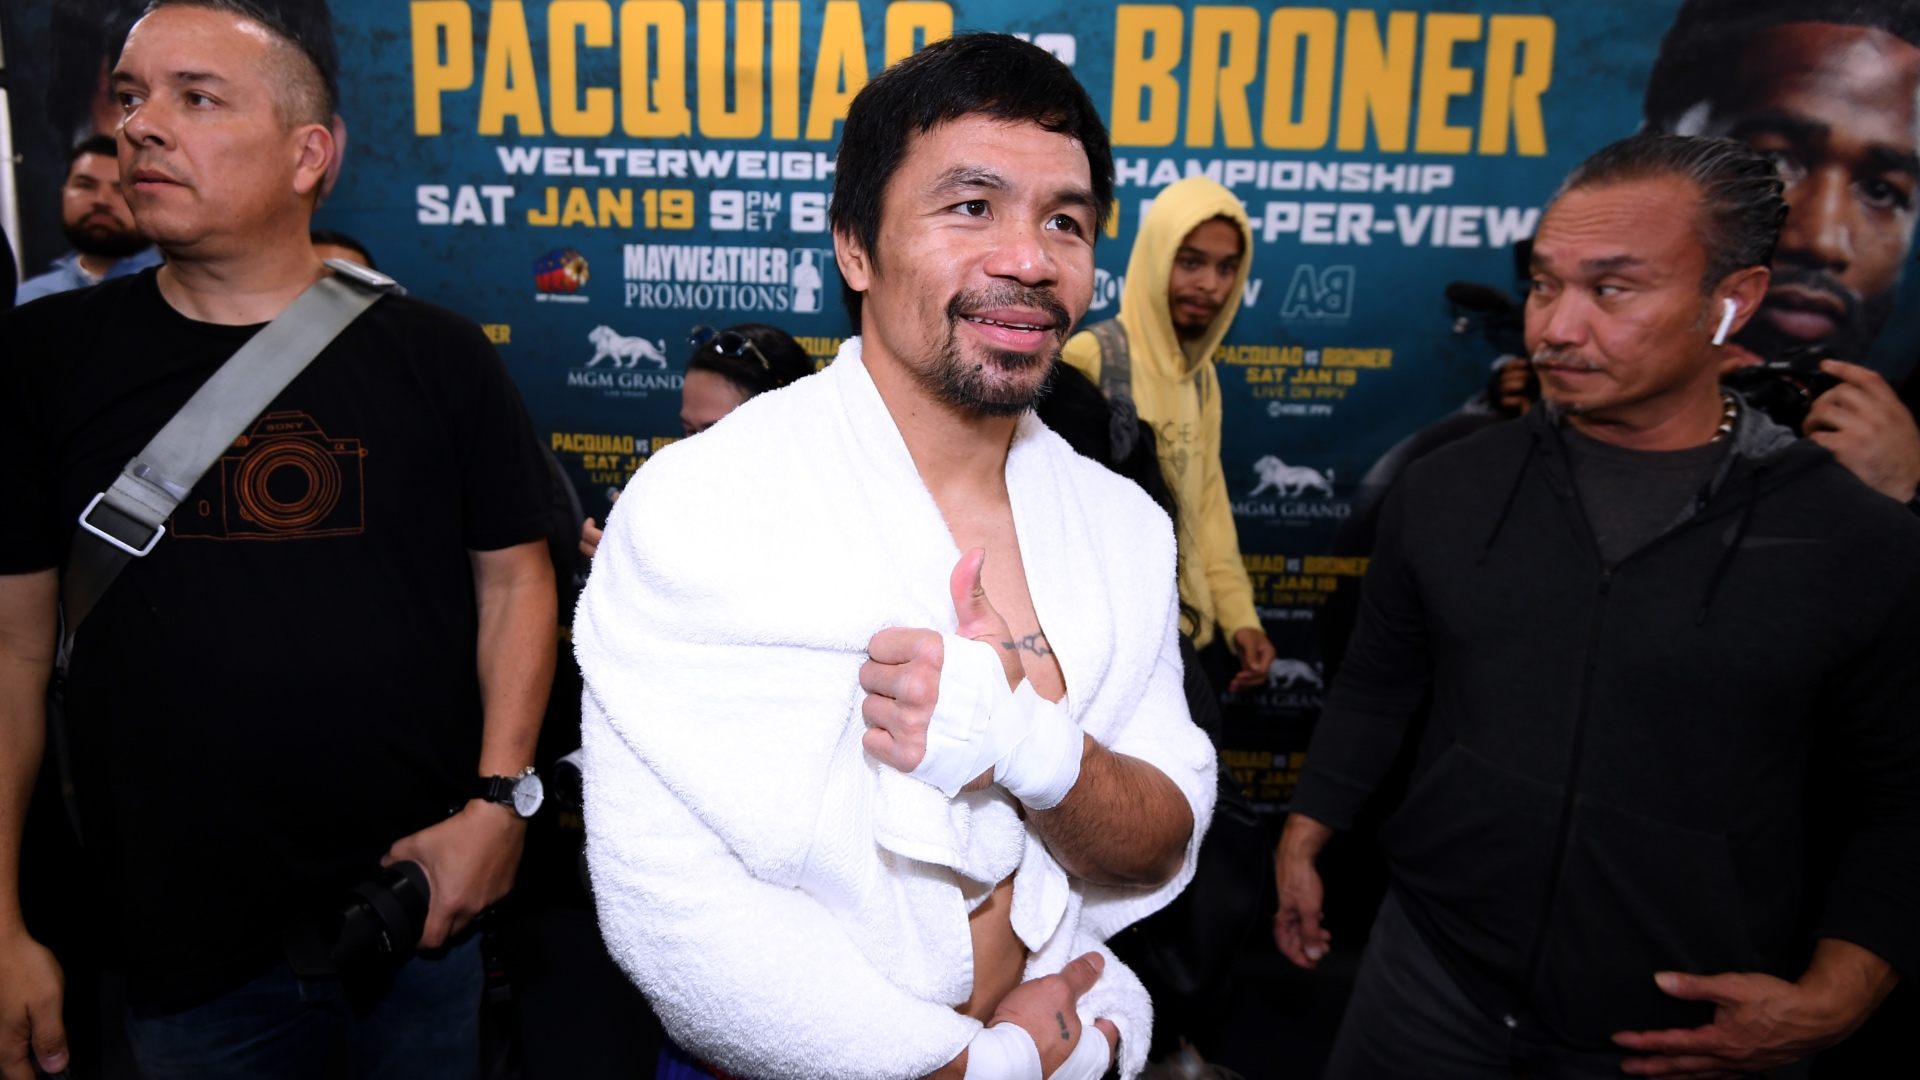 Pacquiao vs. Broner: Manny Pacquiao reflects on where he's been, looks ahead to where he's going